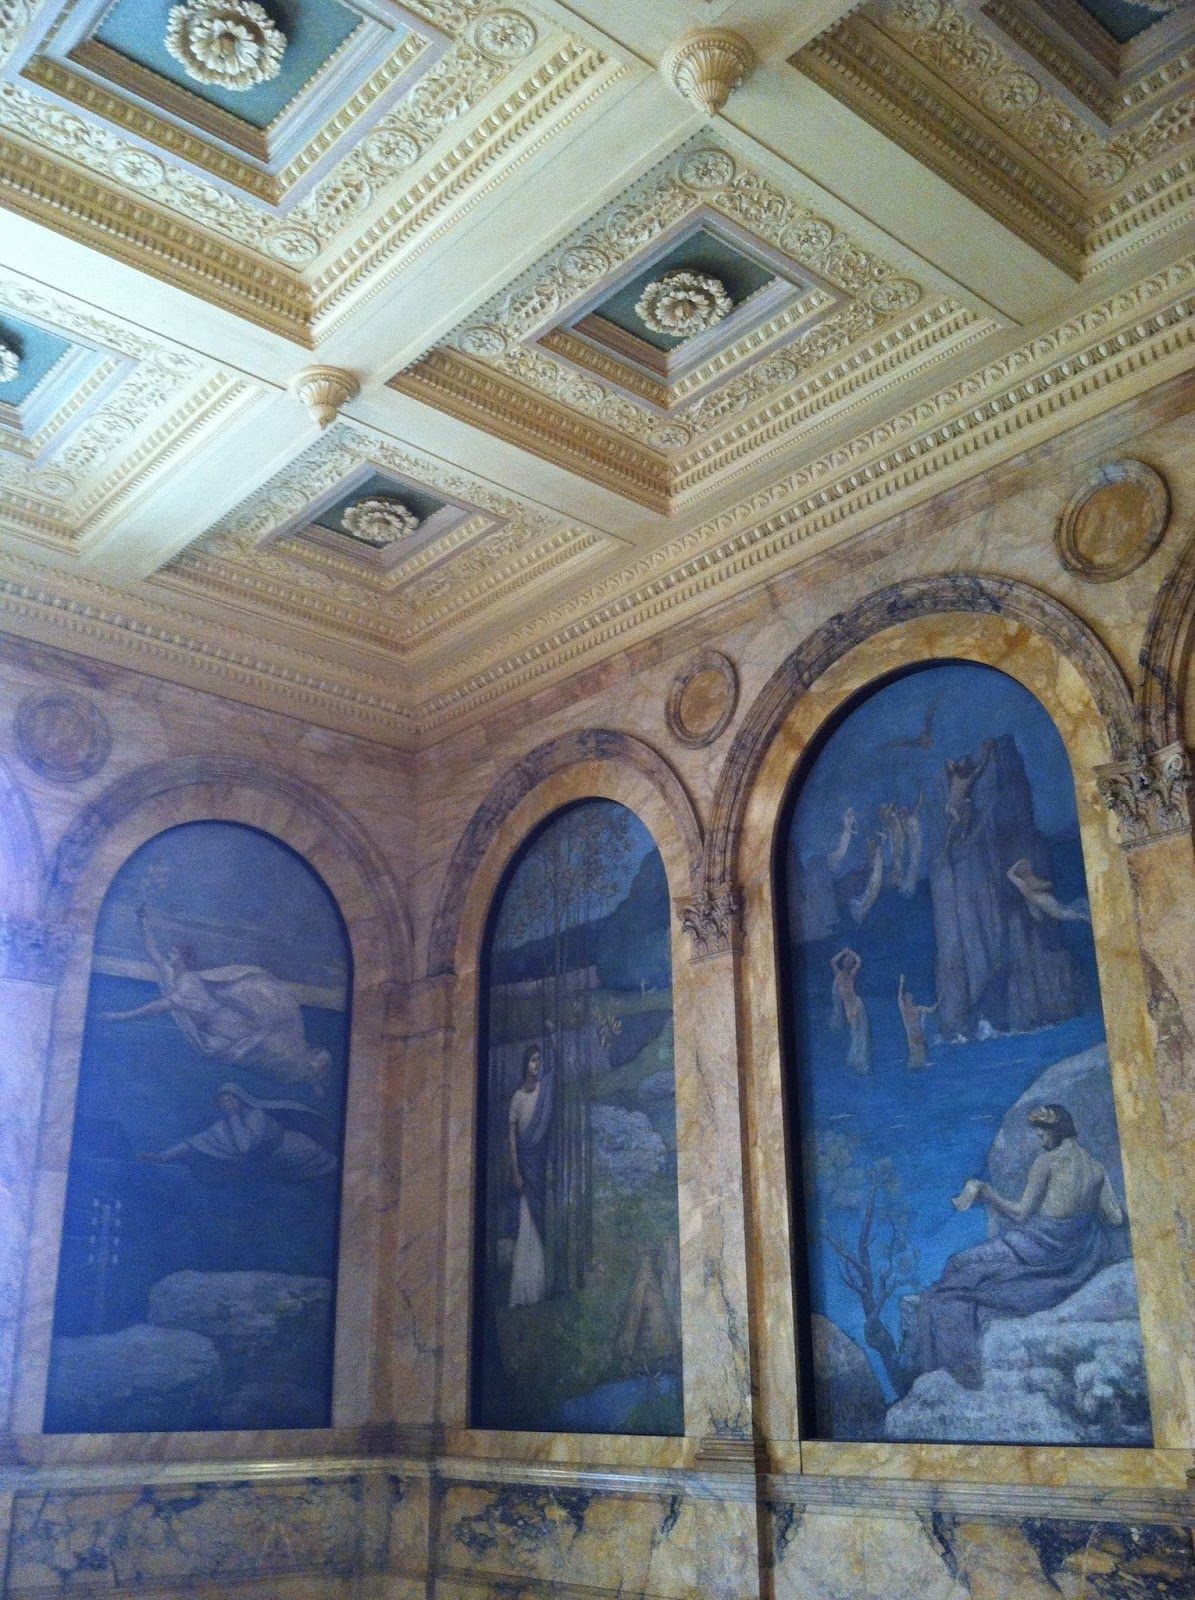 Boston Public Library murals